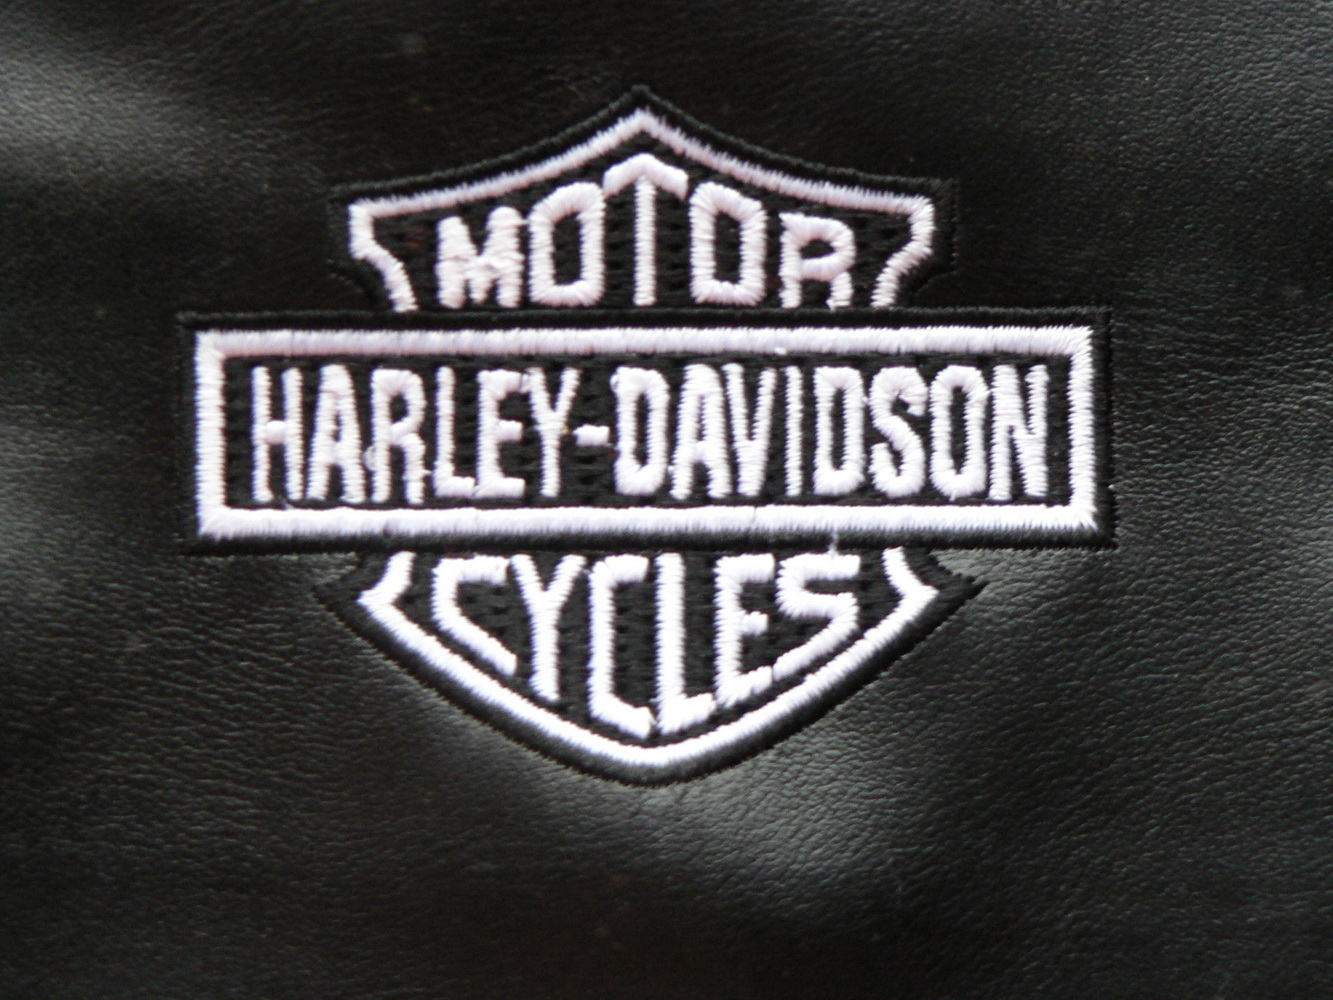 Harley Davidson design embroidered